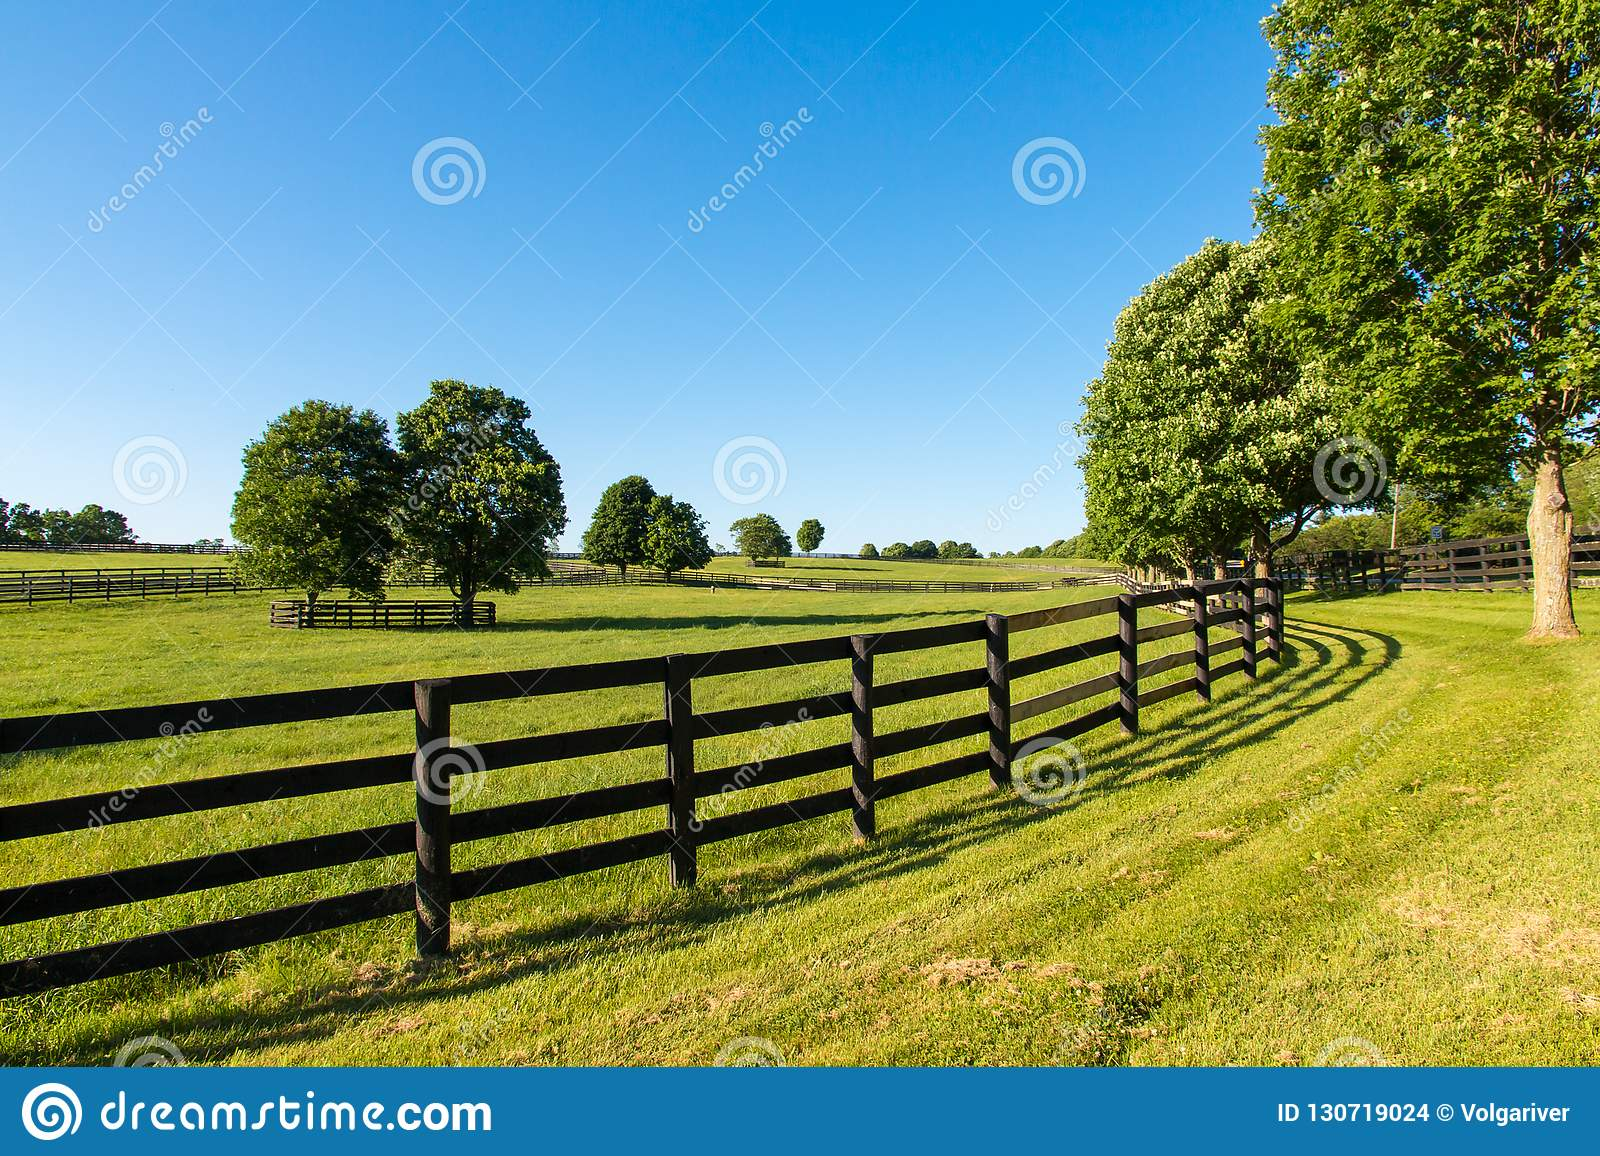 Green Pastures Of Horse Farms Country Summer Landscape Stock Photo Image Of Beautiful Lawn 130719024